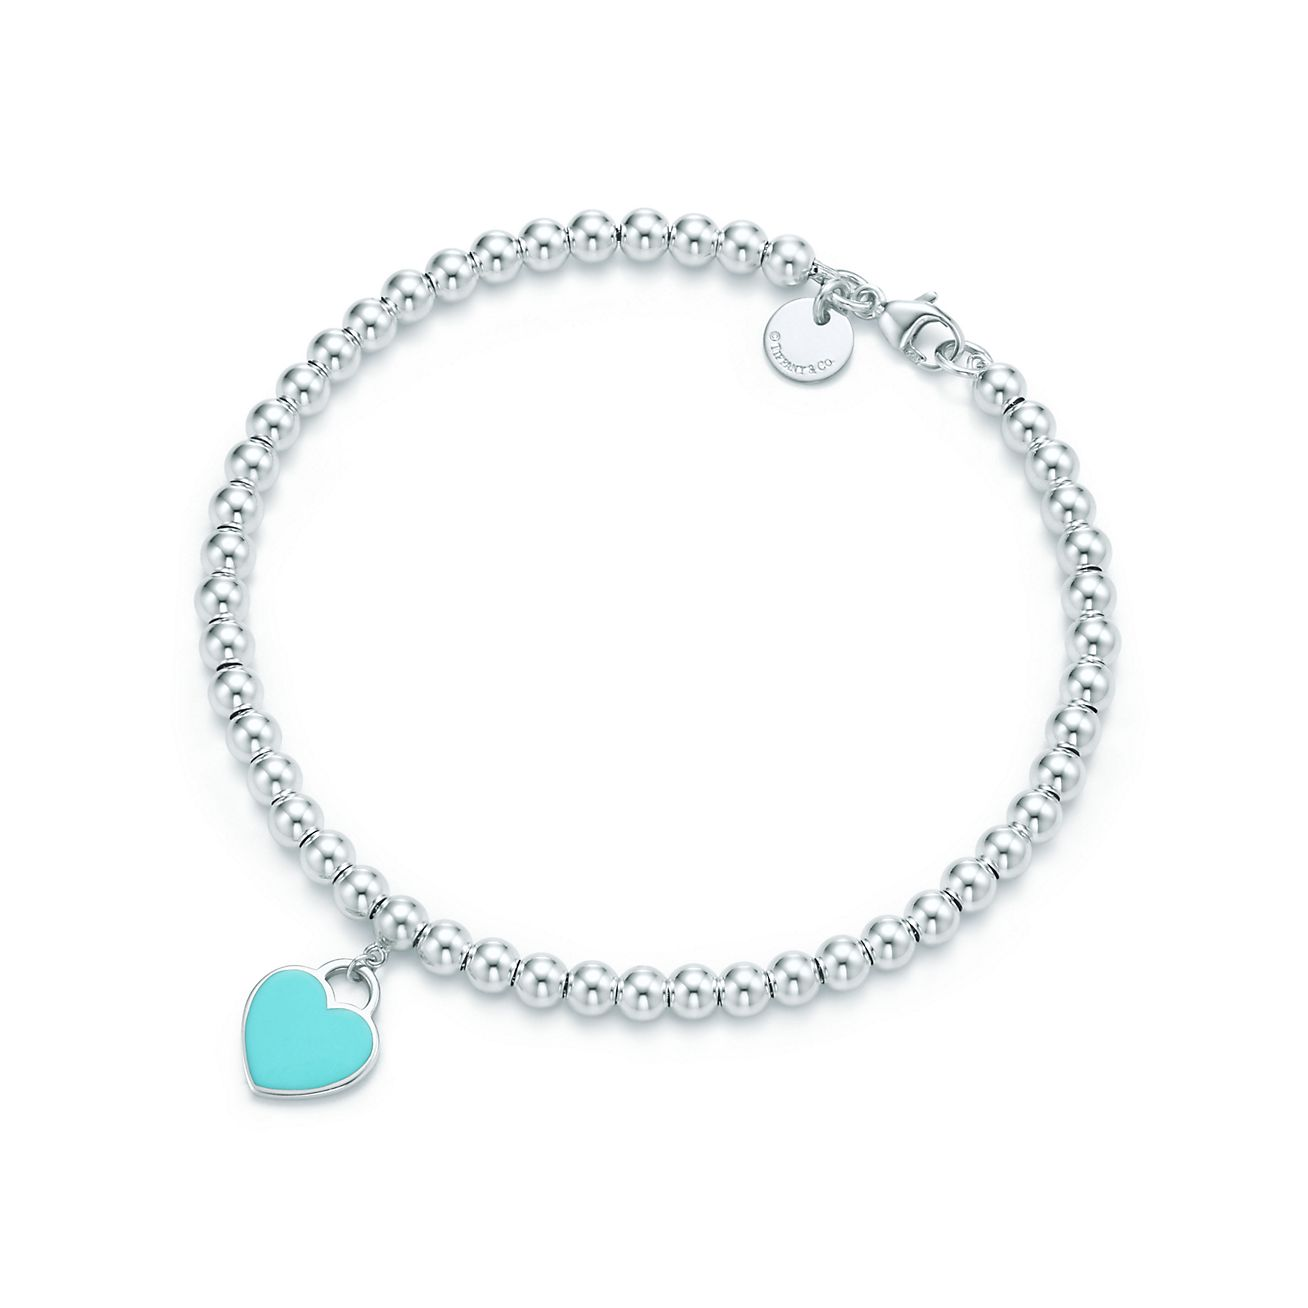 Jewelry Bracelets Return To Tiffany Bead Bracelet Grp03577 Tiffany Jewelry On Sale